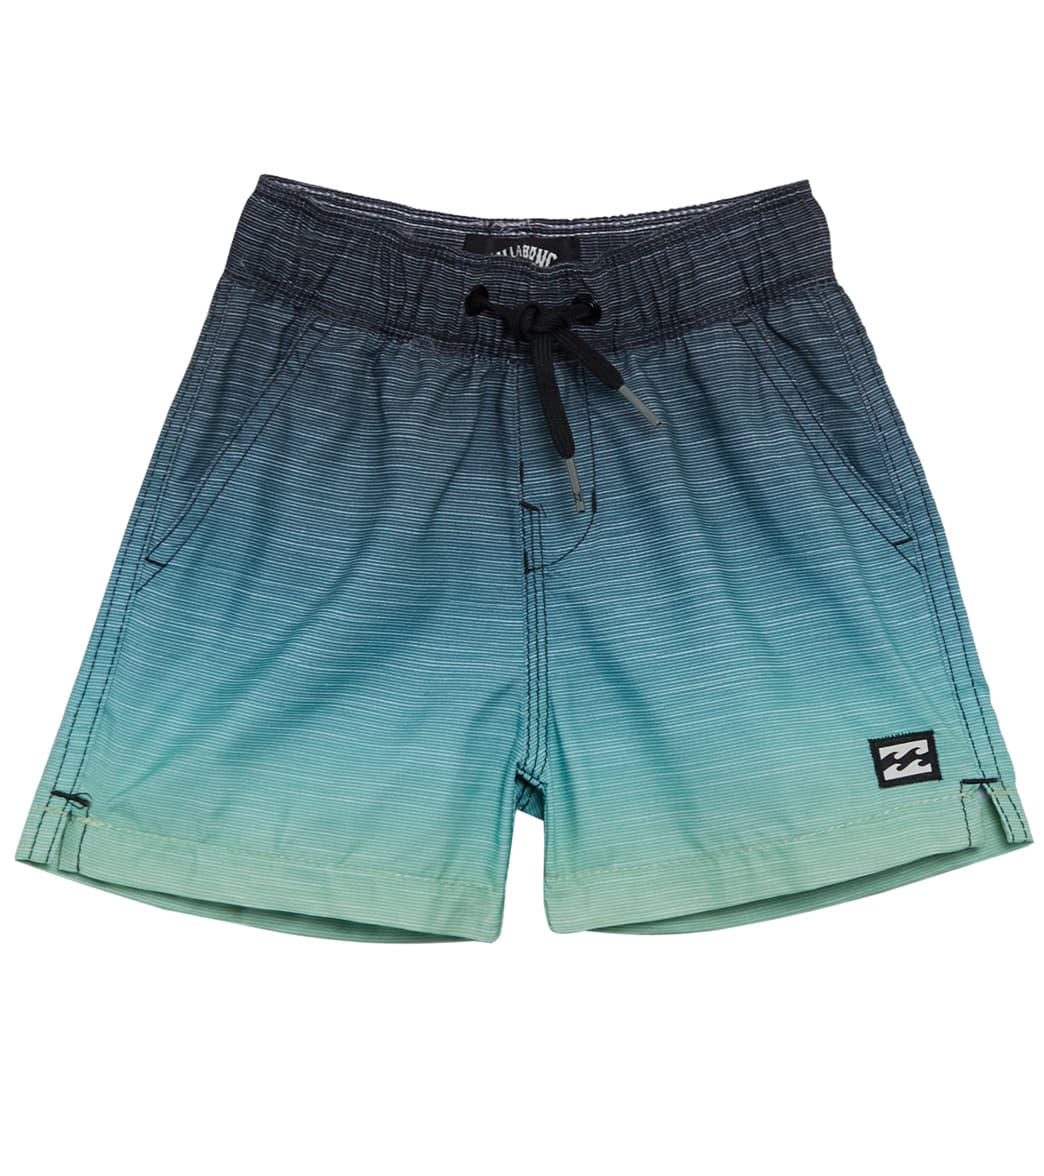 BILLABONG Boys All Day Lb Shorts